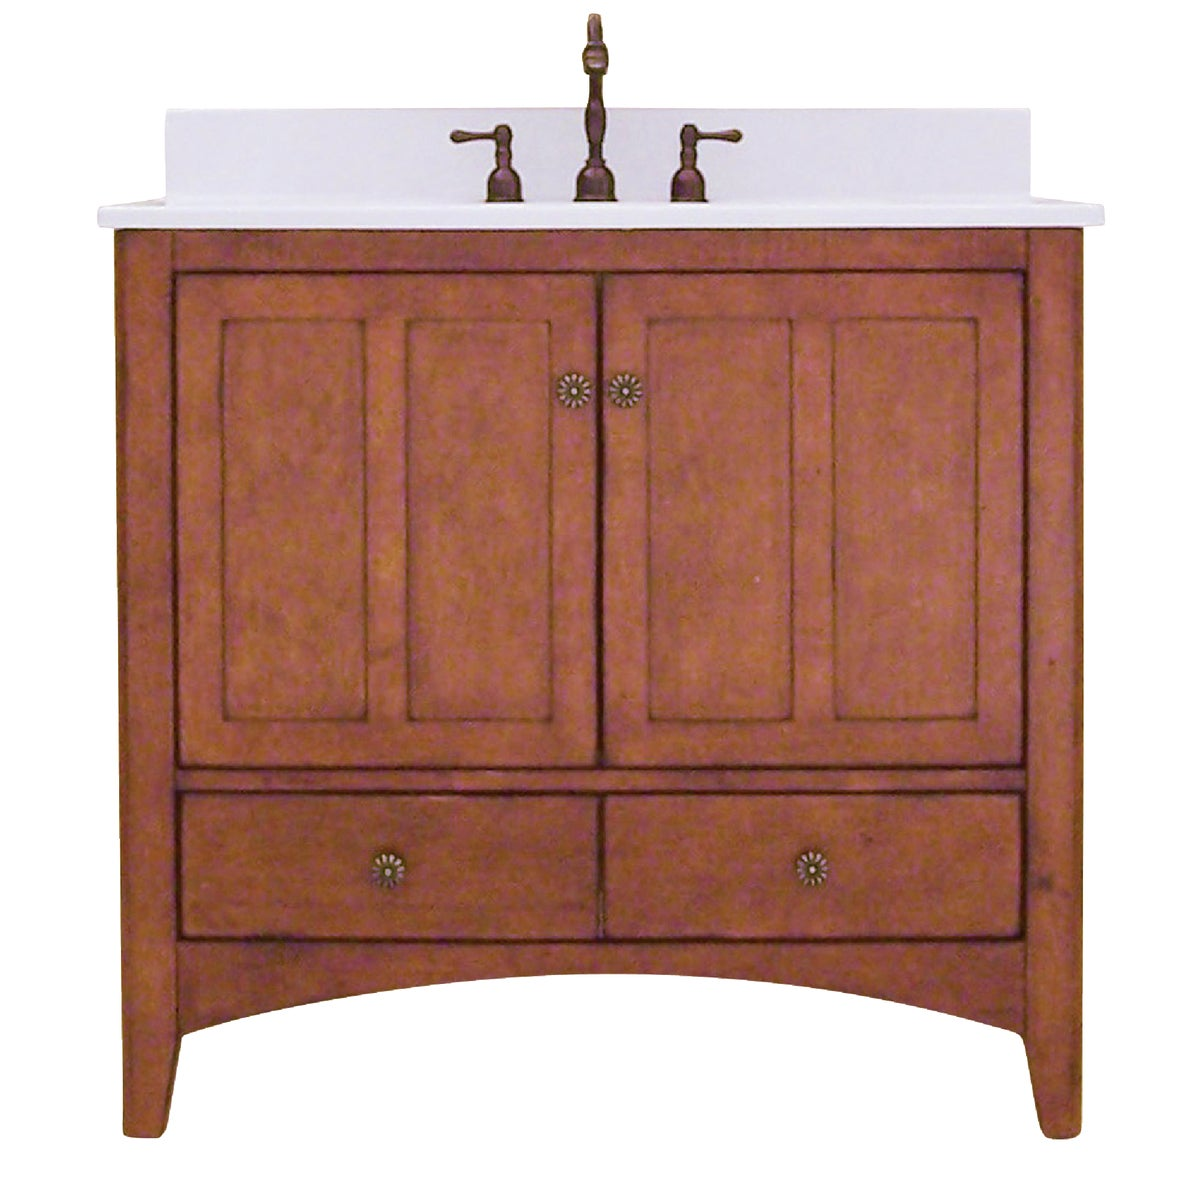 36X21 EXPRESSIONS VANITY - EP3621D by Sunnywood Products